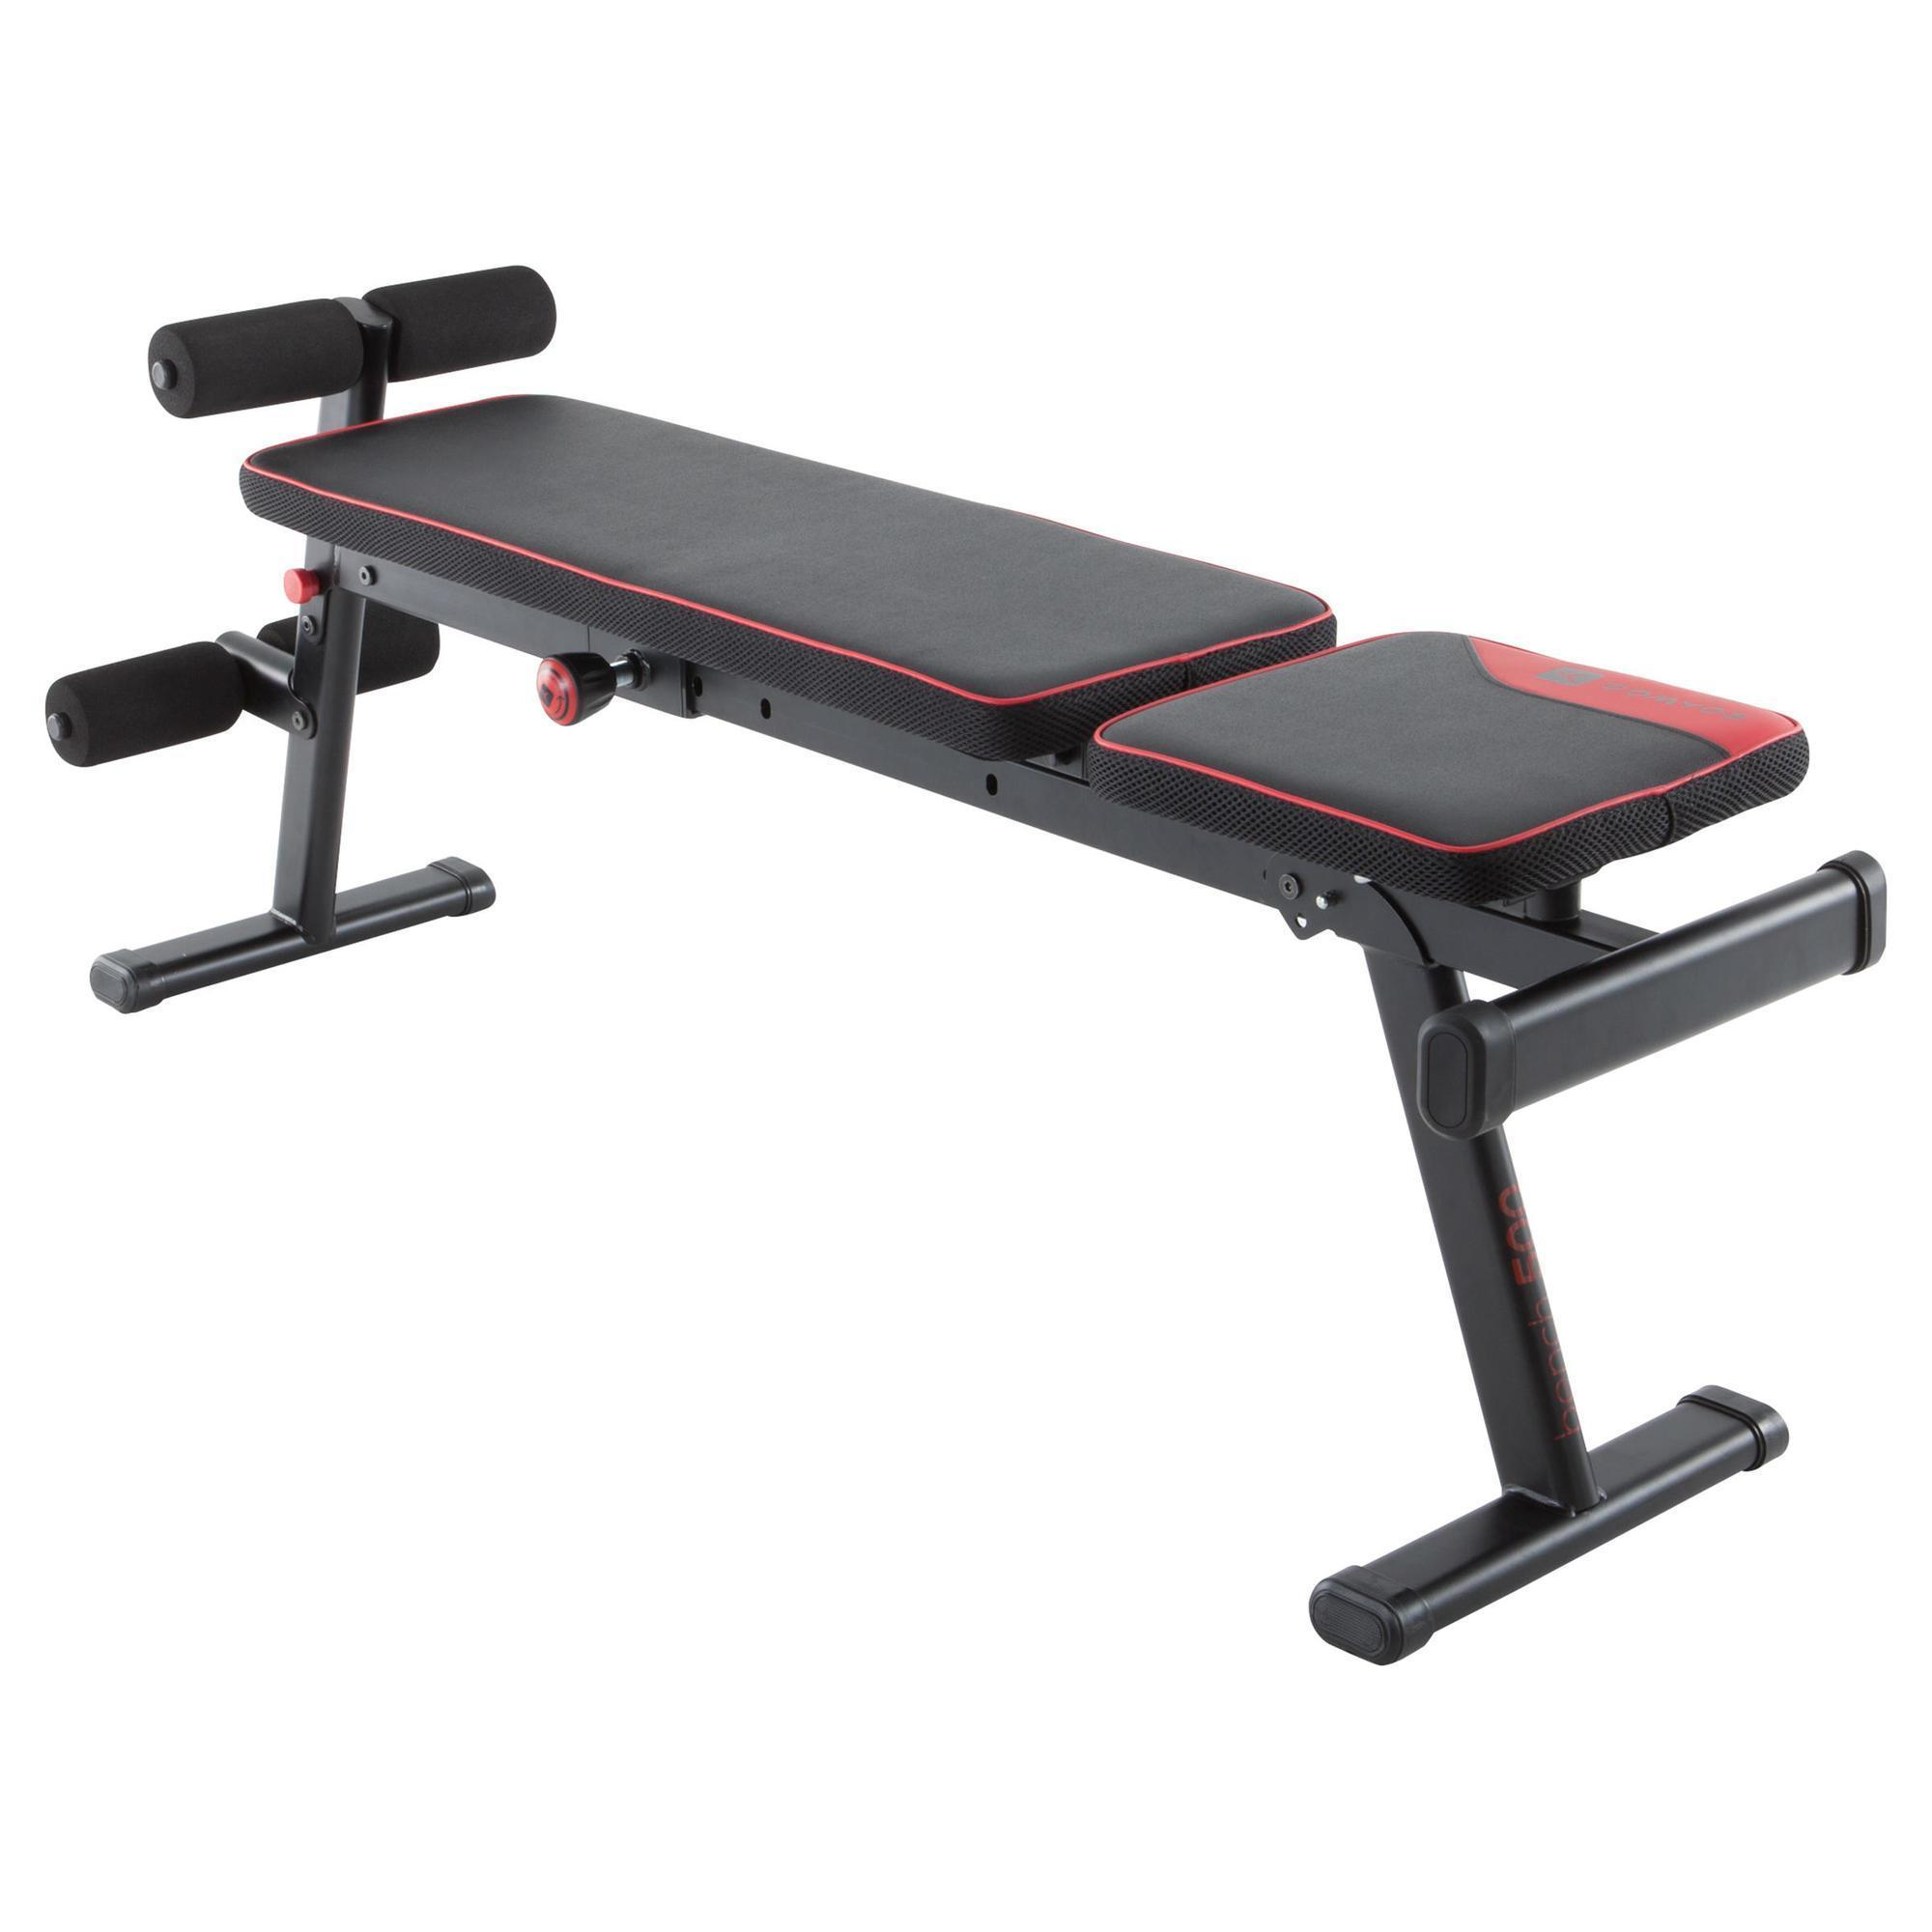 Banc De Musculation 500 Pliable Et Inclinable Domyos Decathlon